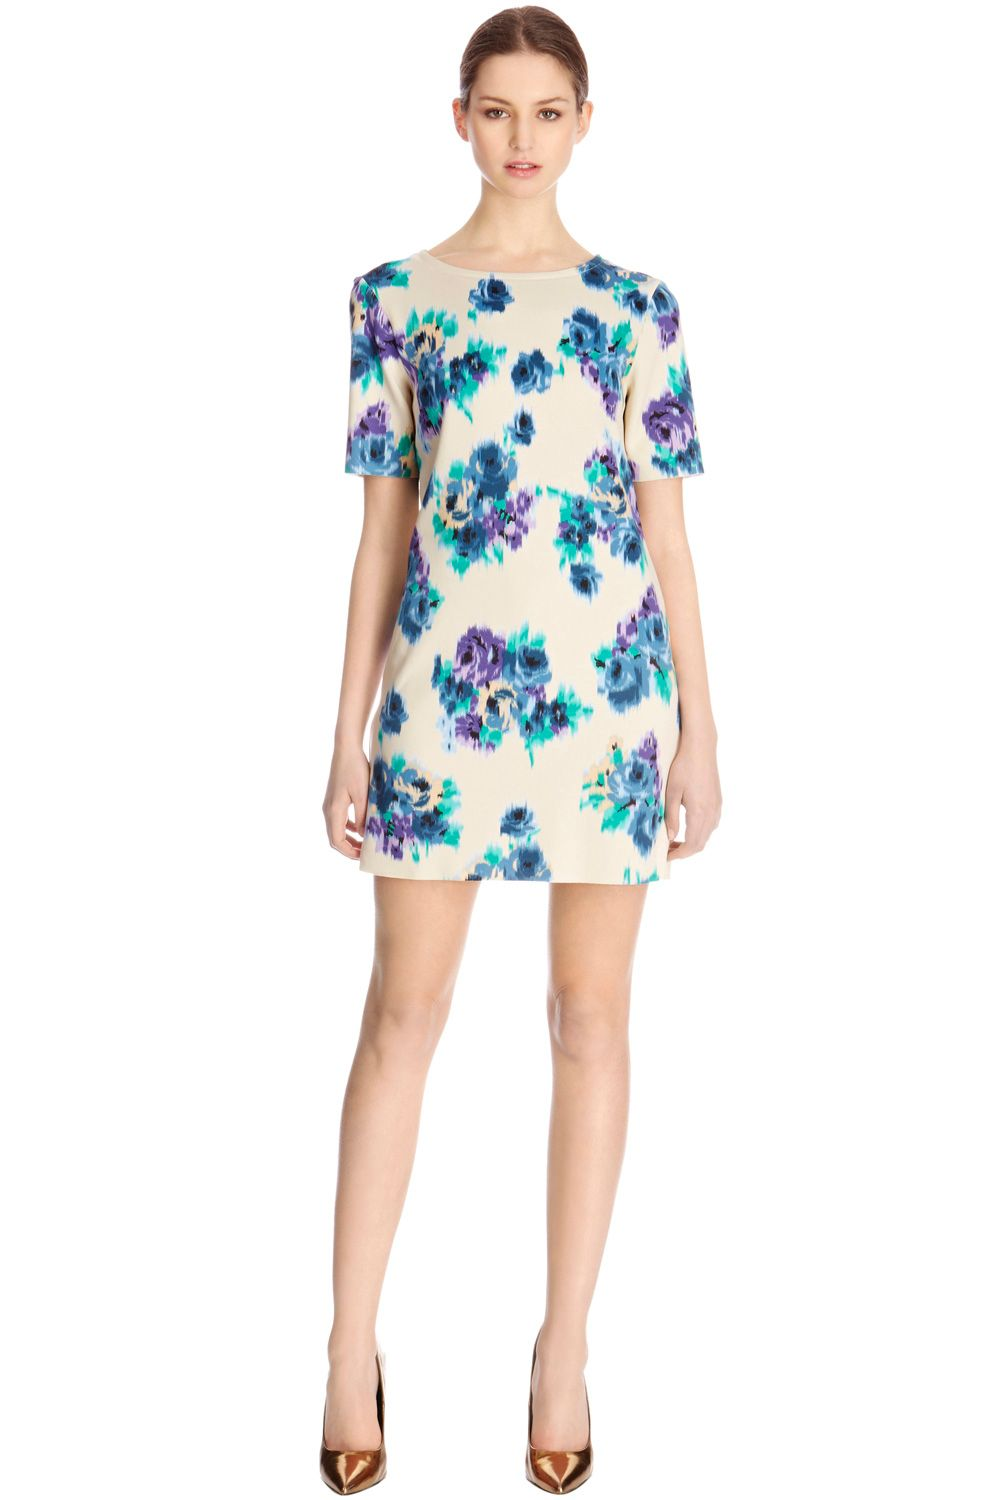 Blurred floral premium t-shirt dress